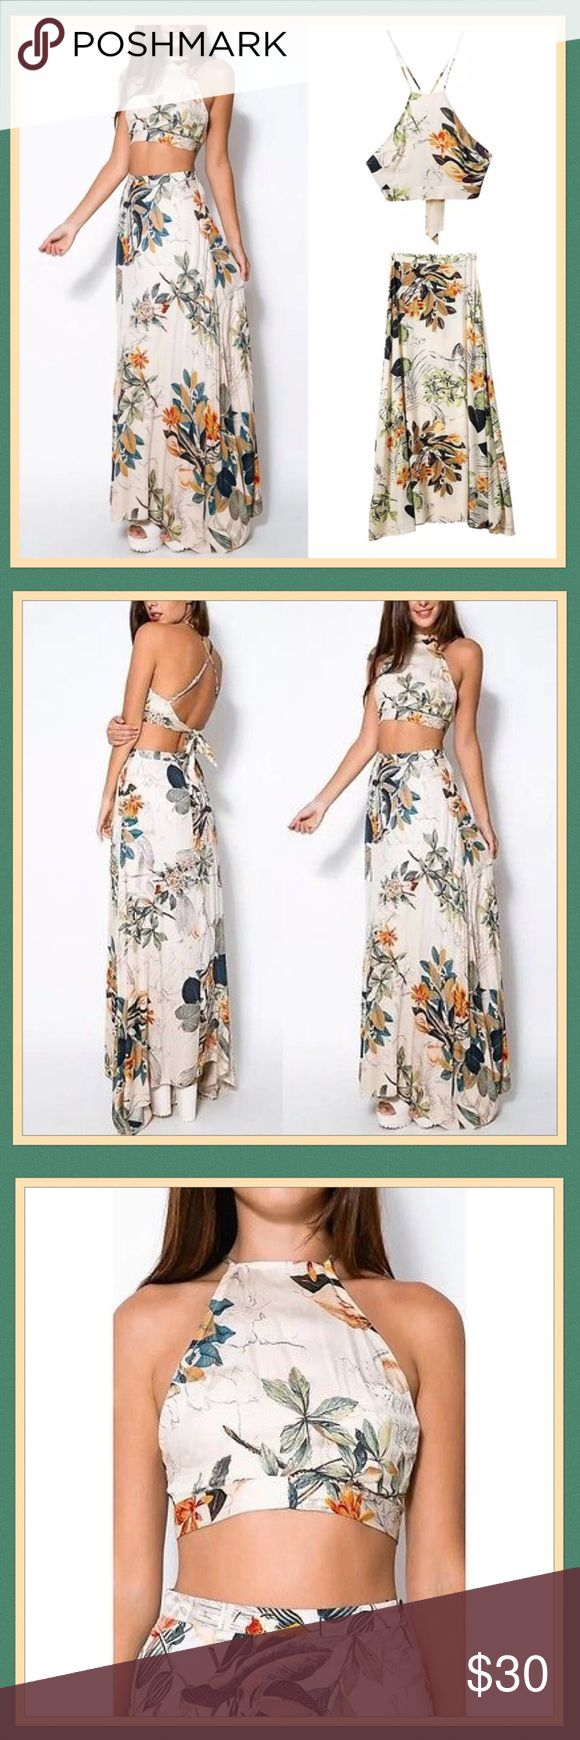 """🌺 Floral Two Piece Crop Top & Skirt 🌺 Floral Two Piece. Super cute; didn't fit my chest 😤. Crop top with adjustable halter & tie back. Floor length skirt. Lightweight cotton material.  Measurements: Top (Length 11""""), Bottom (Waist 26"""", Length 39""""). Dresses"""